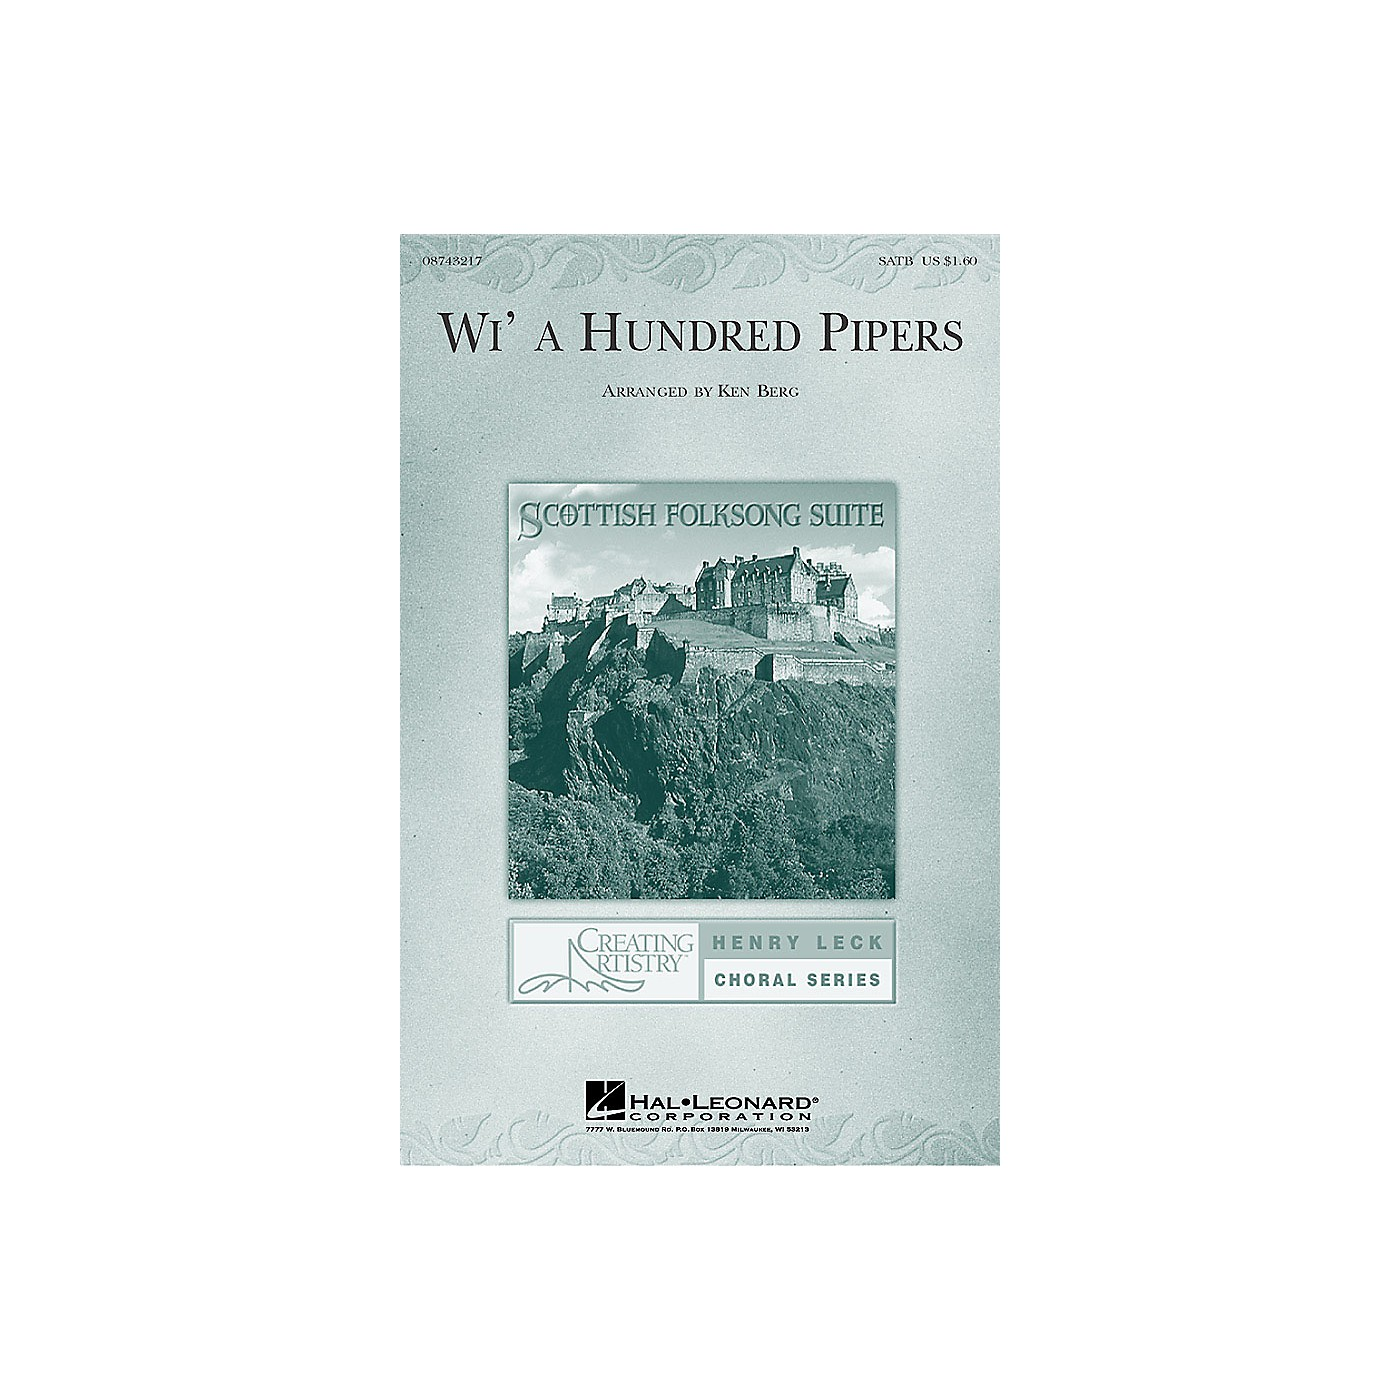 Hal Leonard Wi' a Hundred Pipers (from Scottish Folksong Suite) (SATB) SATB arranged by Ken Berg thumbnail